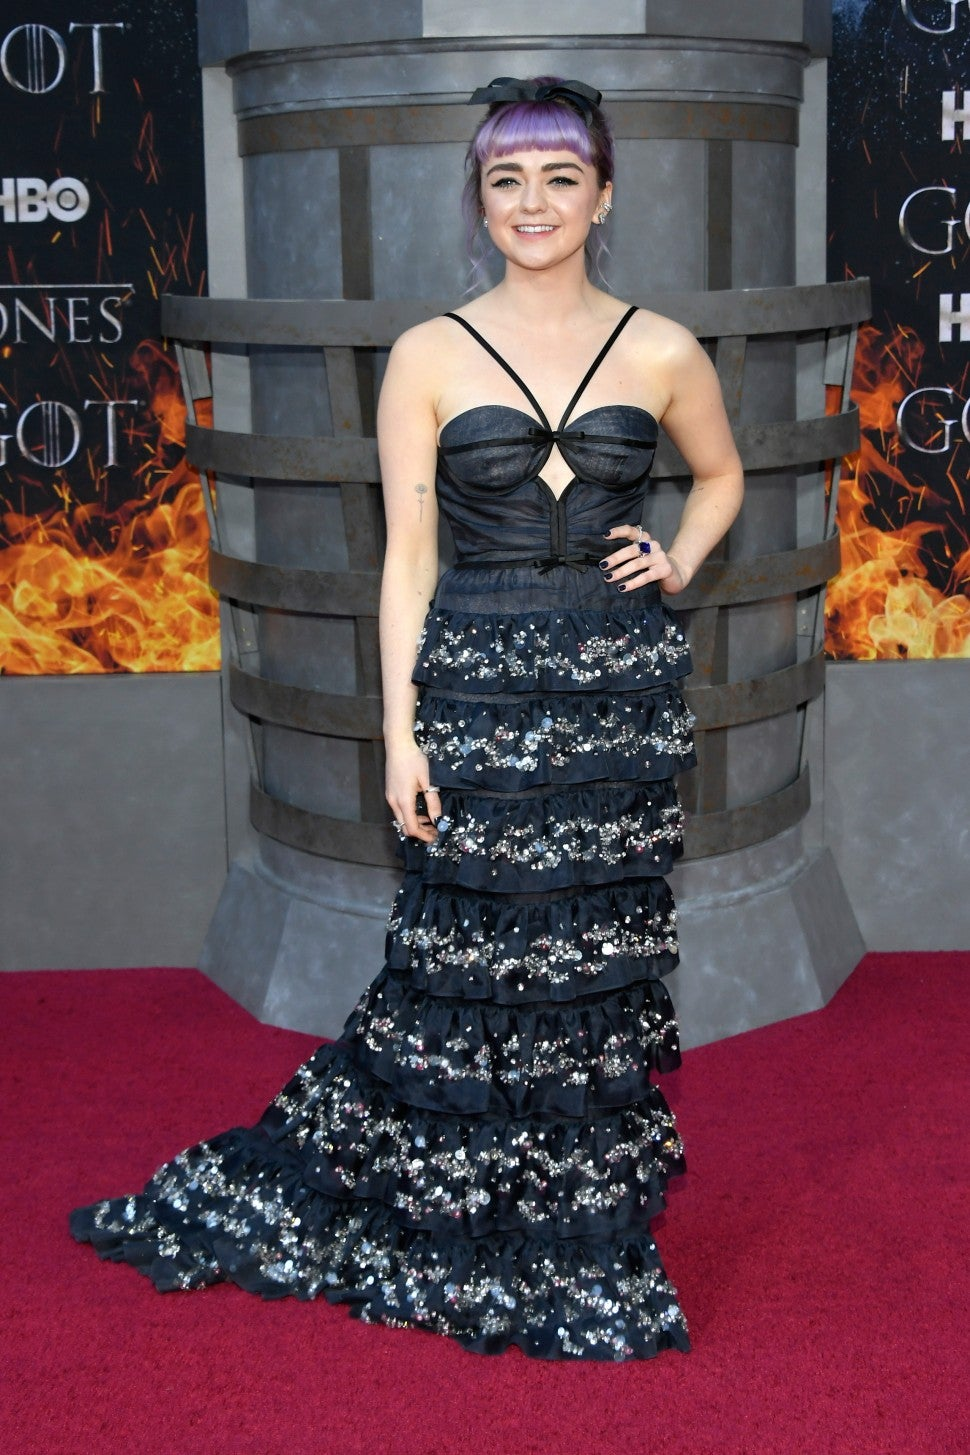 Maisie Williams Game Of Thrones Season 8 Premiere